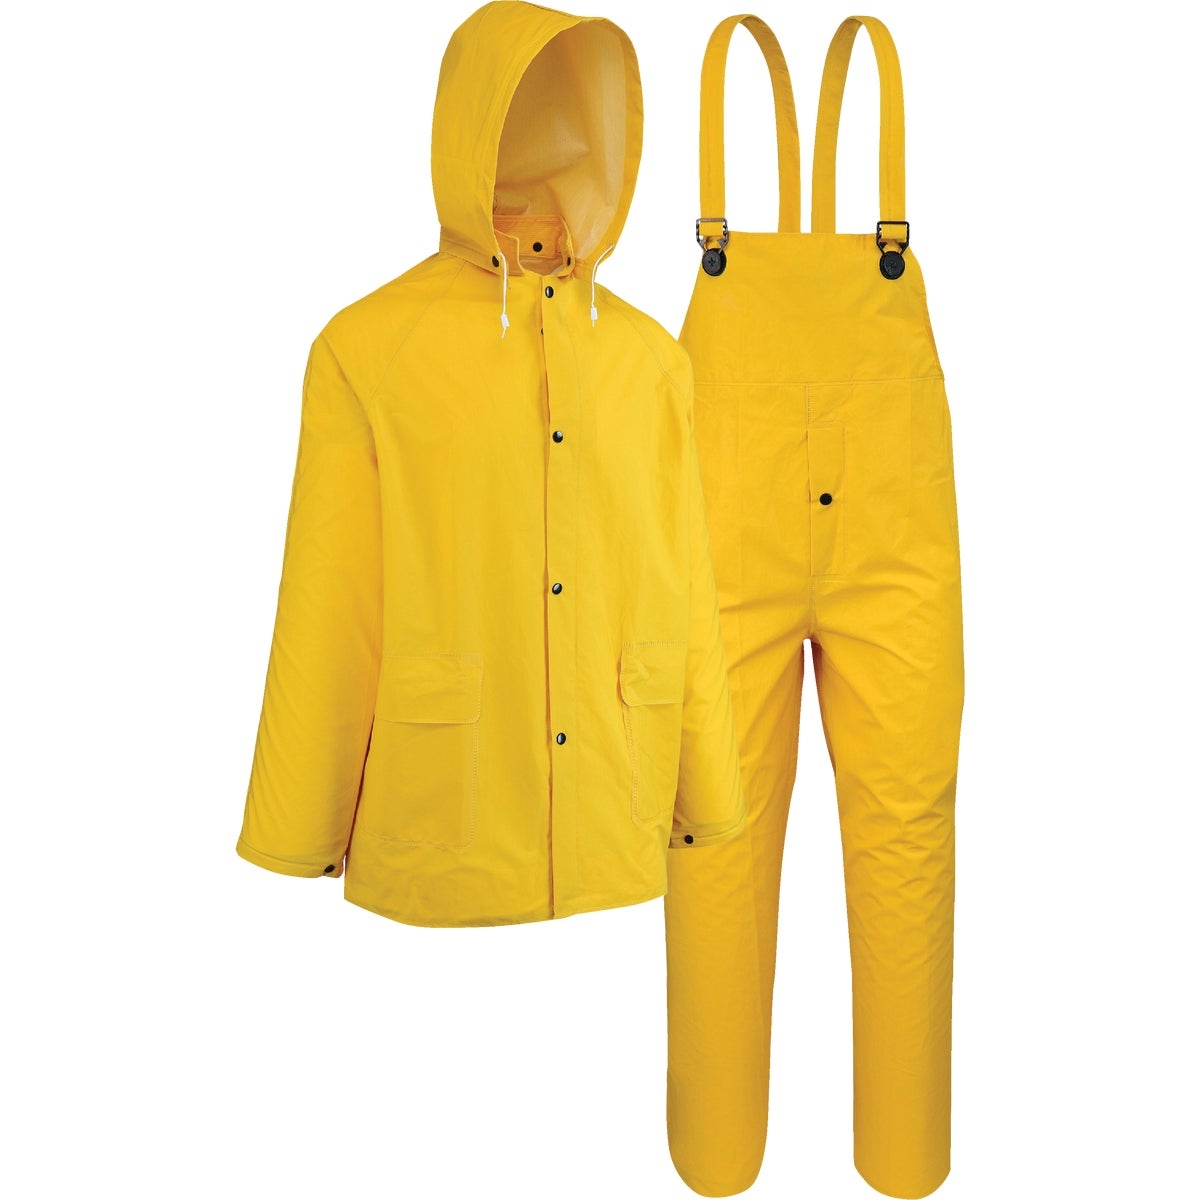 XXXL .35 YELLOW RAINSUIT